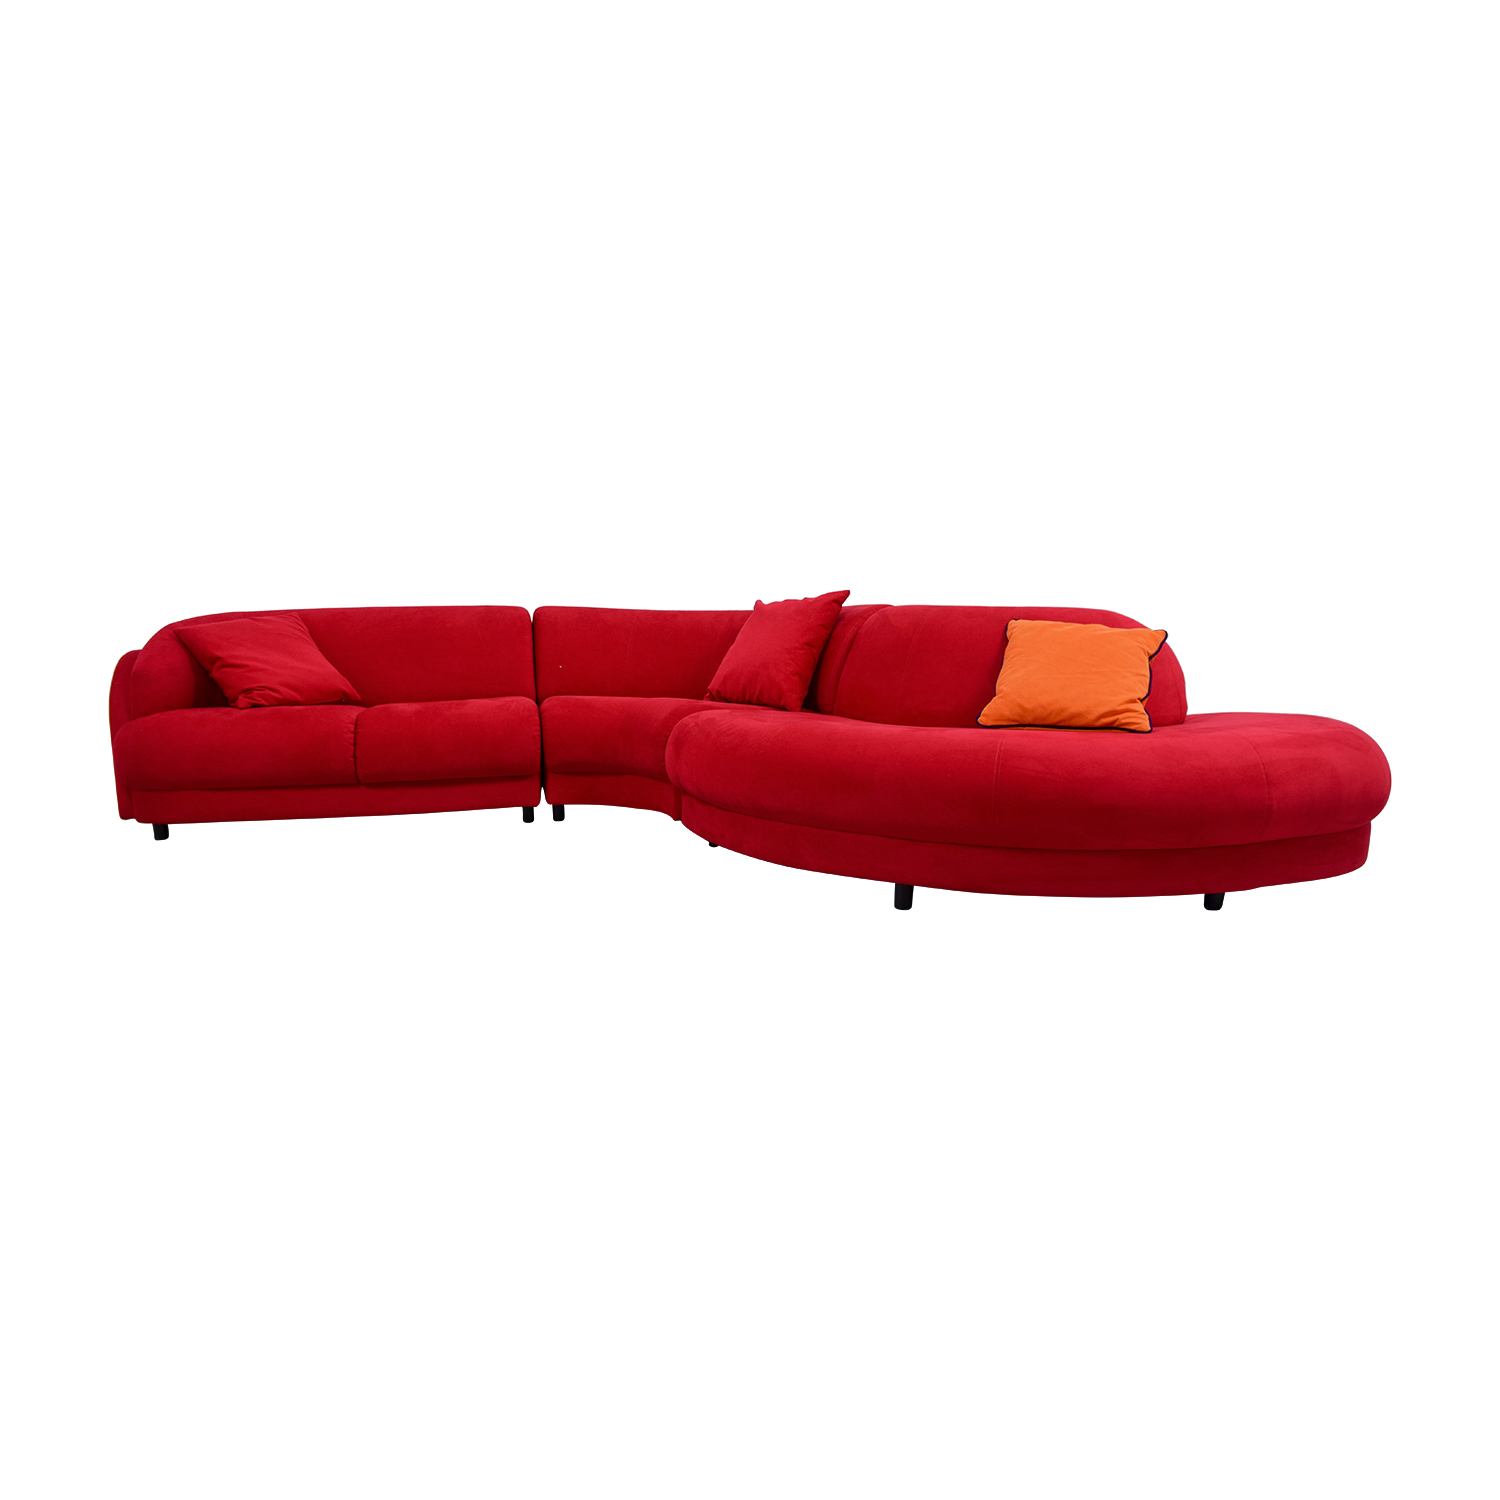 66% OFF - Bright Red Curved Sectional with Pillows / Sofas